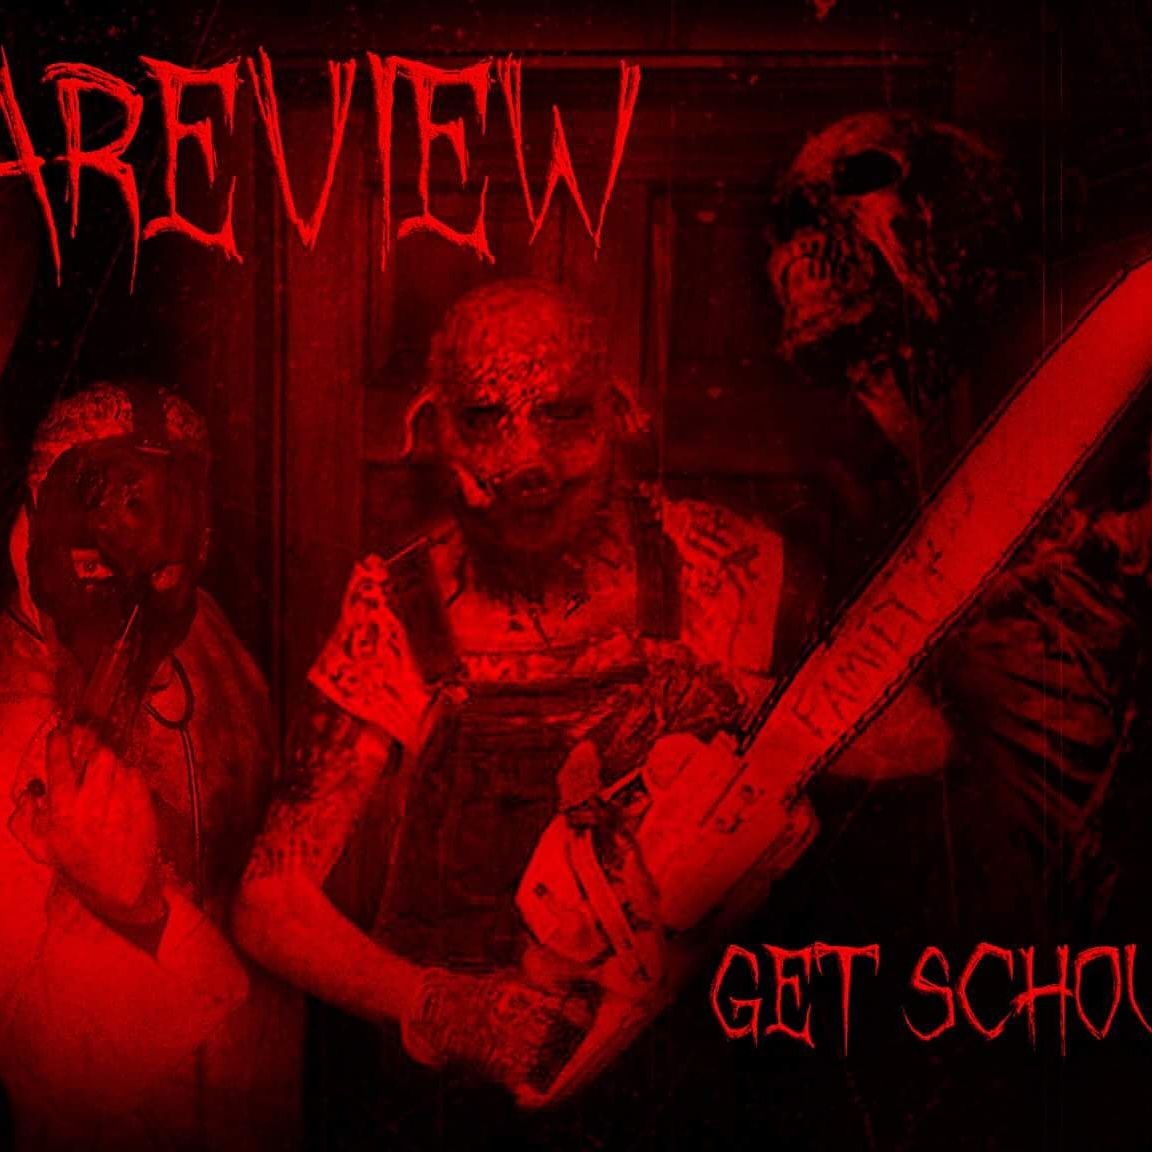 St Albans Wv Halloween 2020 Scareview Grave Schoul' providing Halloween chills for seven years